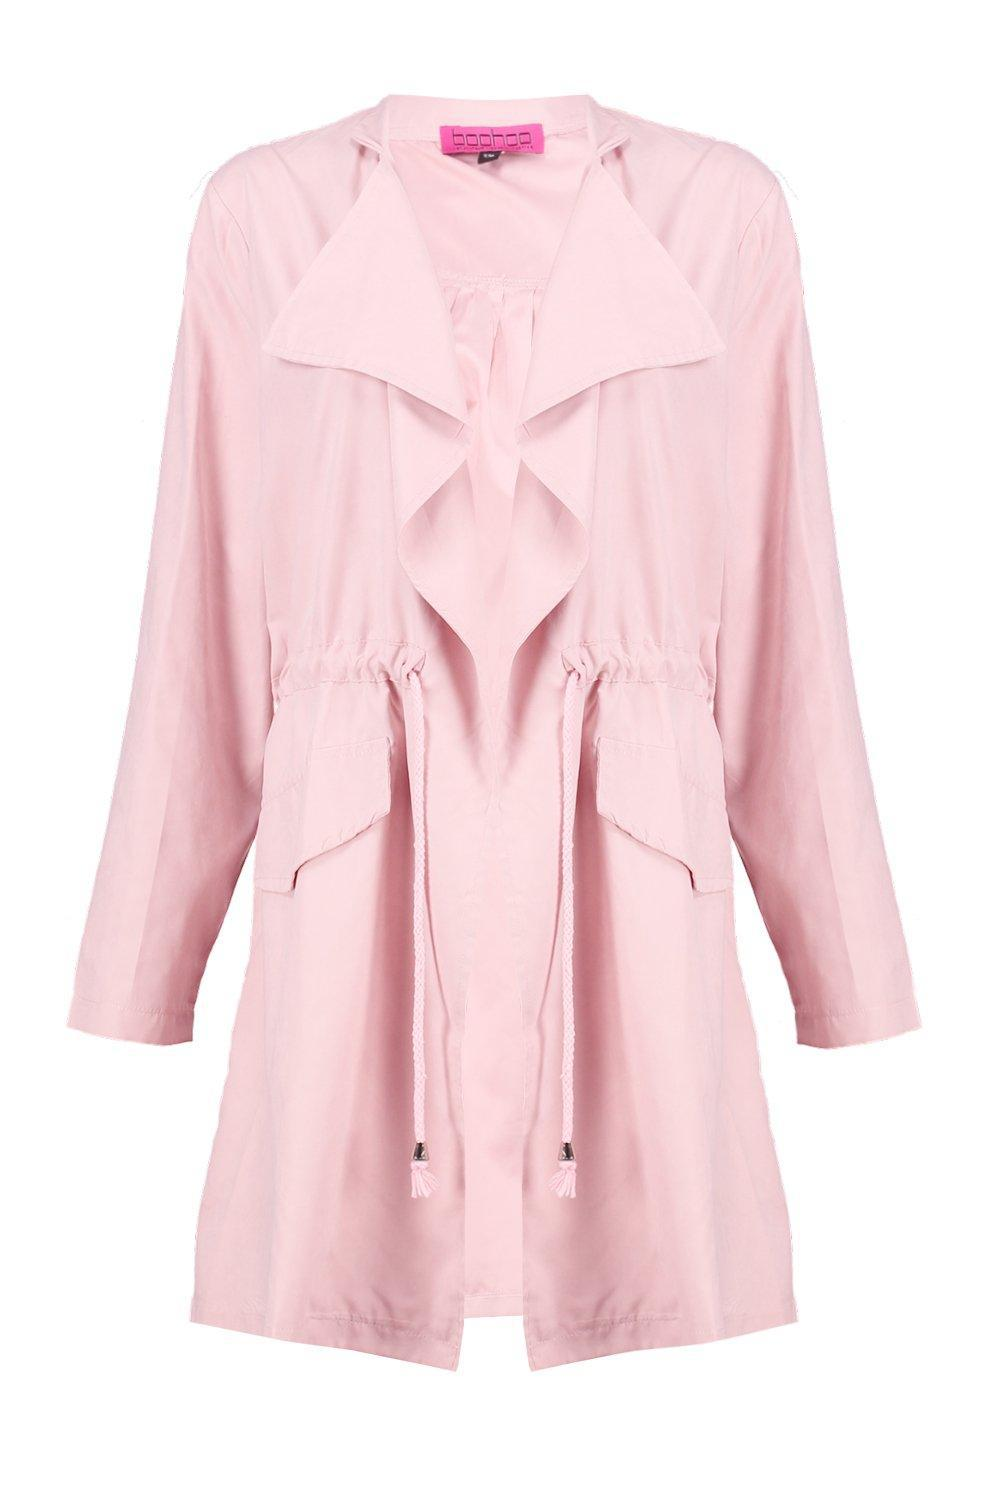 Boohoo Milly Tie Waist Waterfall Utility Jacket in Pink | Lyst